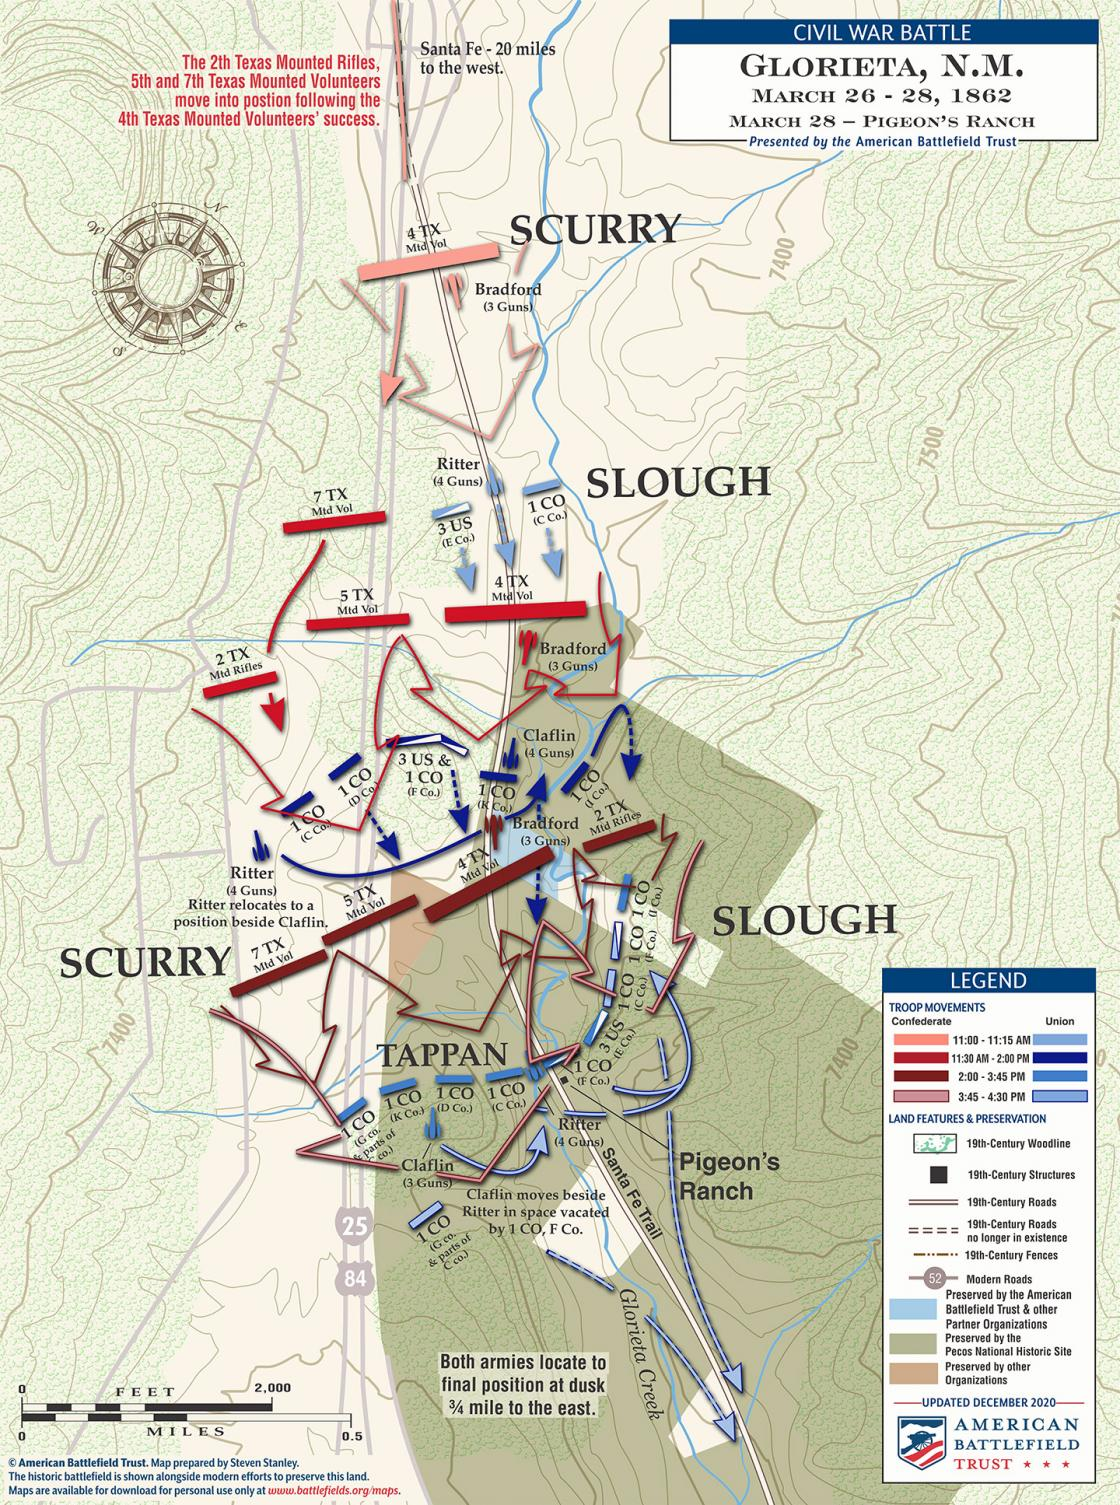 Glorieta Pass - The Fight for Pigeon's Ranch - March 28, 1862 (December 2020)